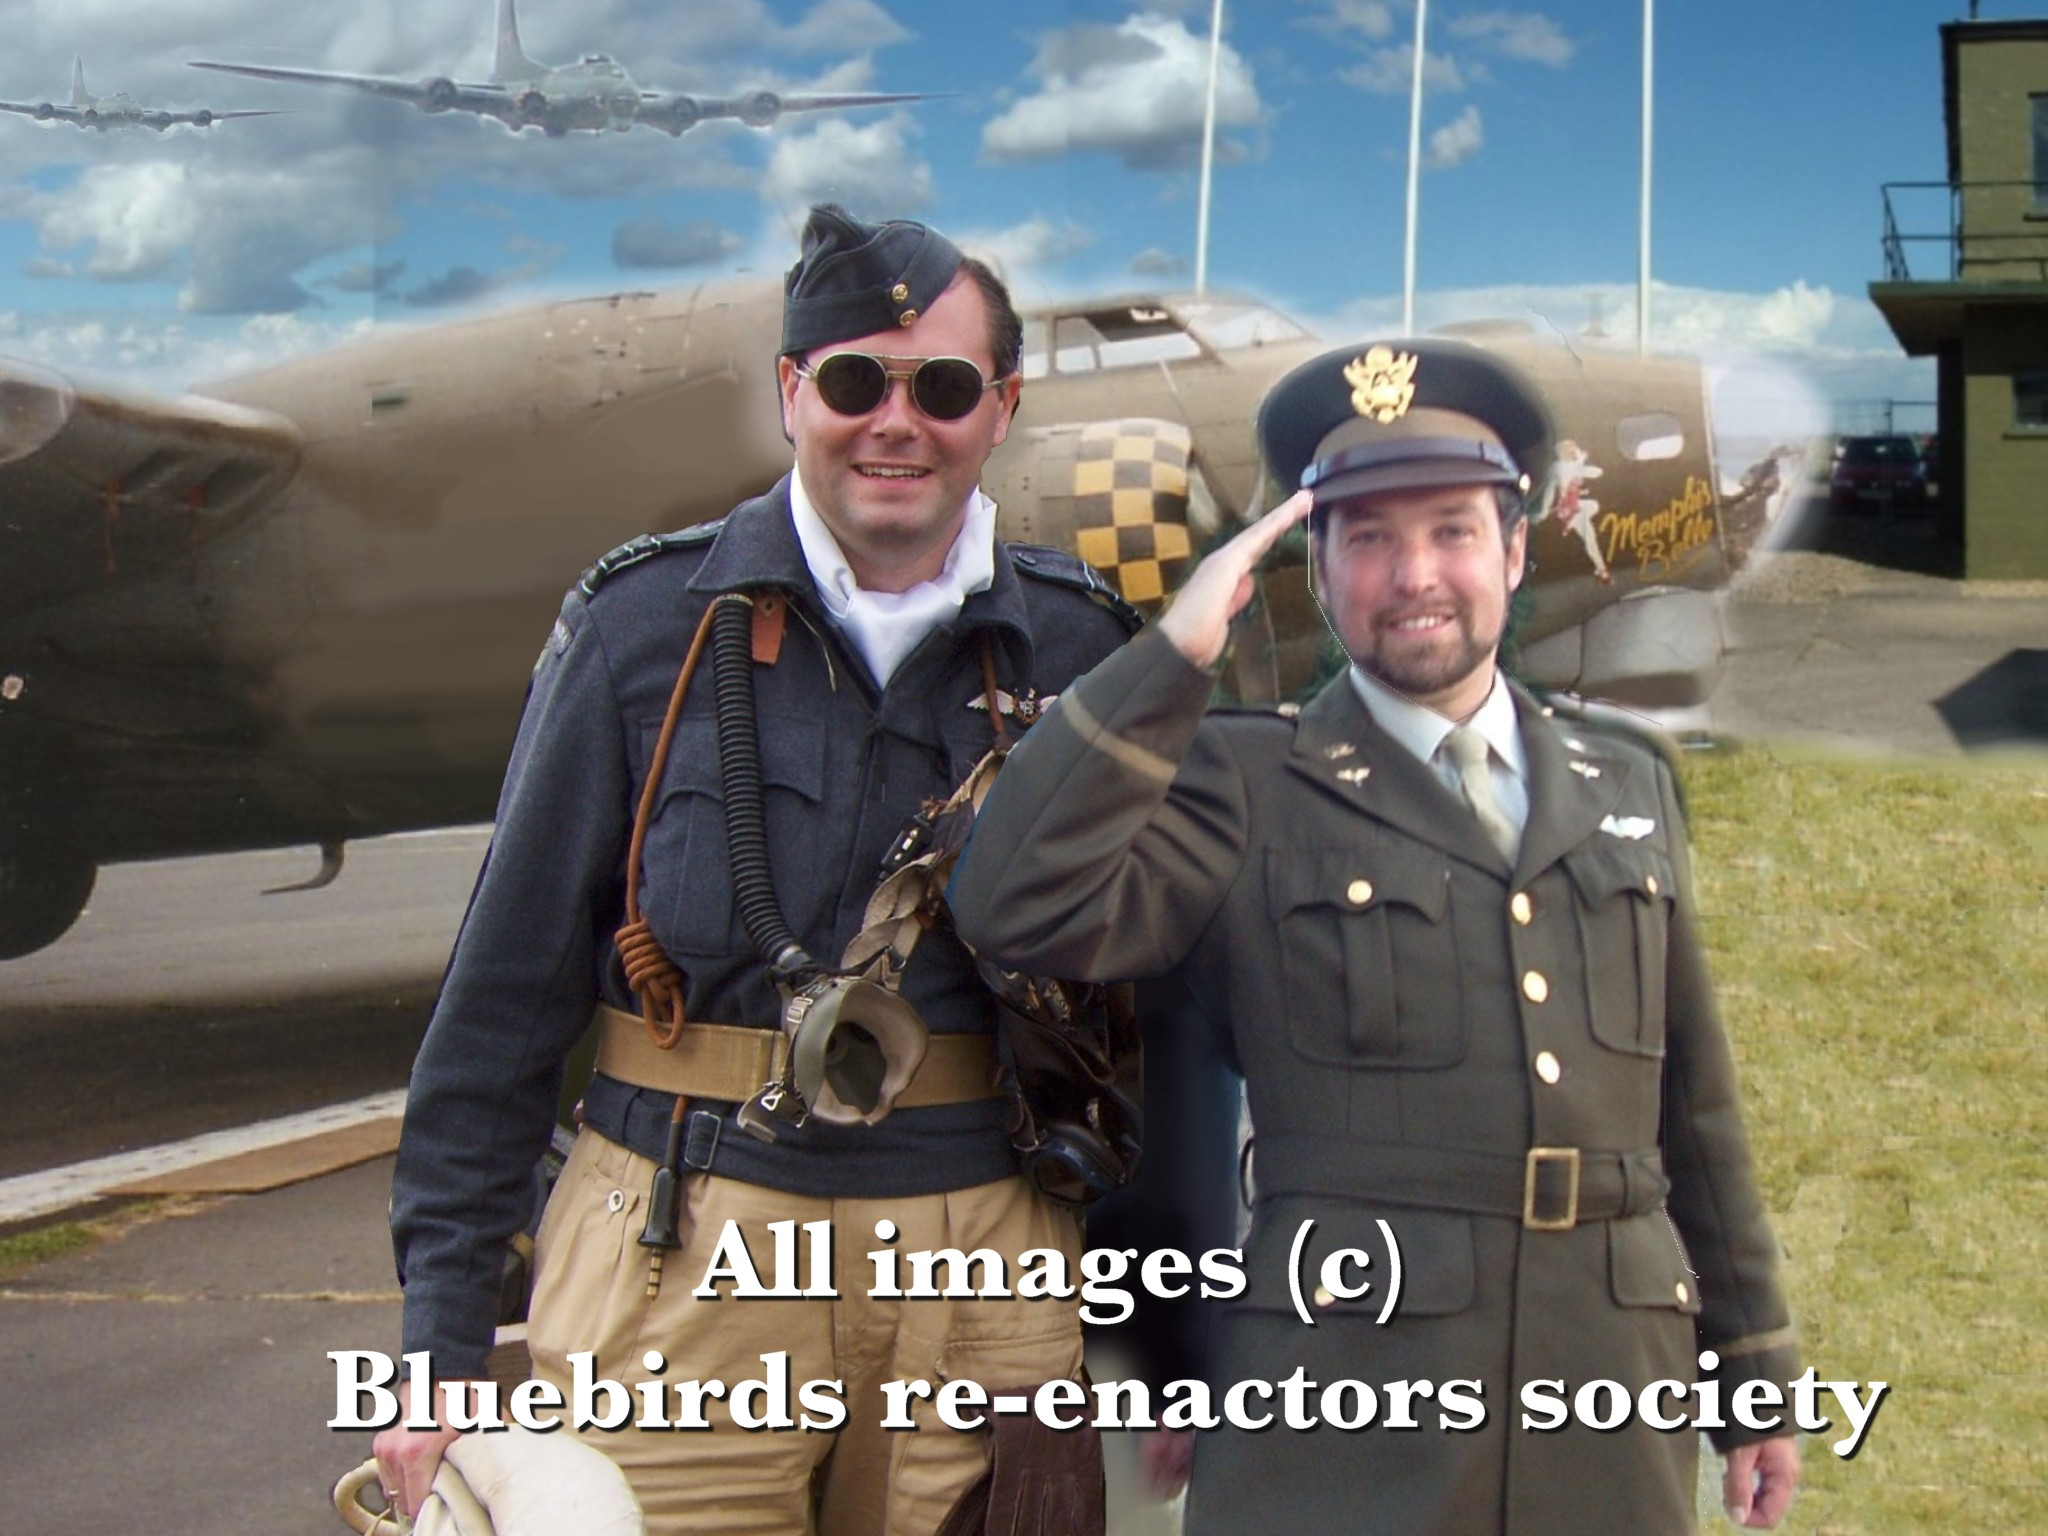 Military Style with Martyn in RAF uniform and Steve in USAAF 8th Airforce uniform